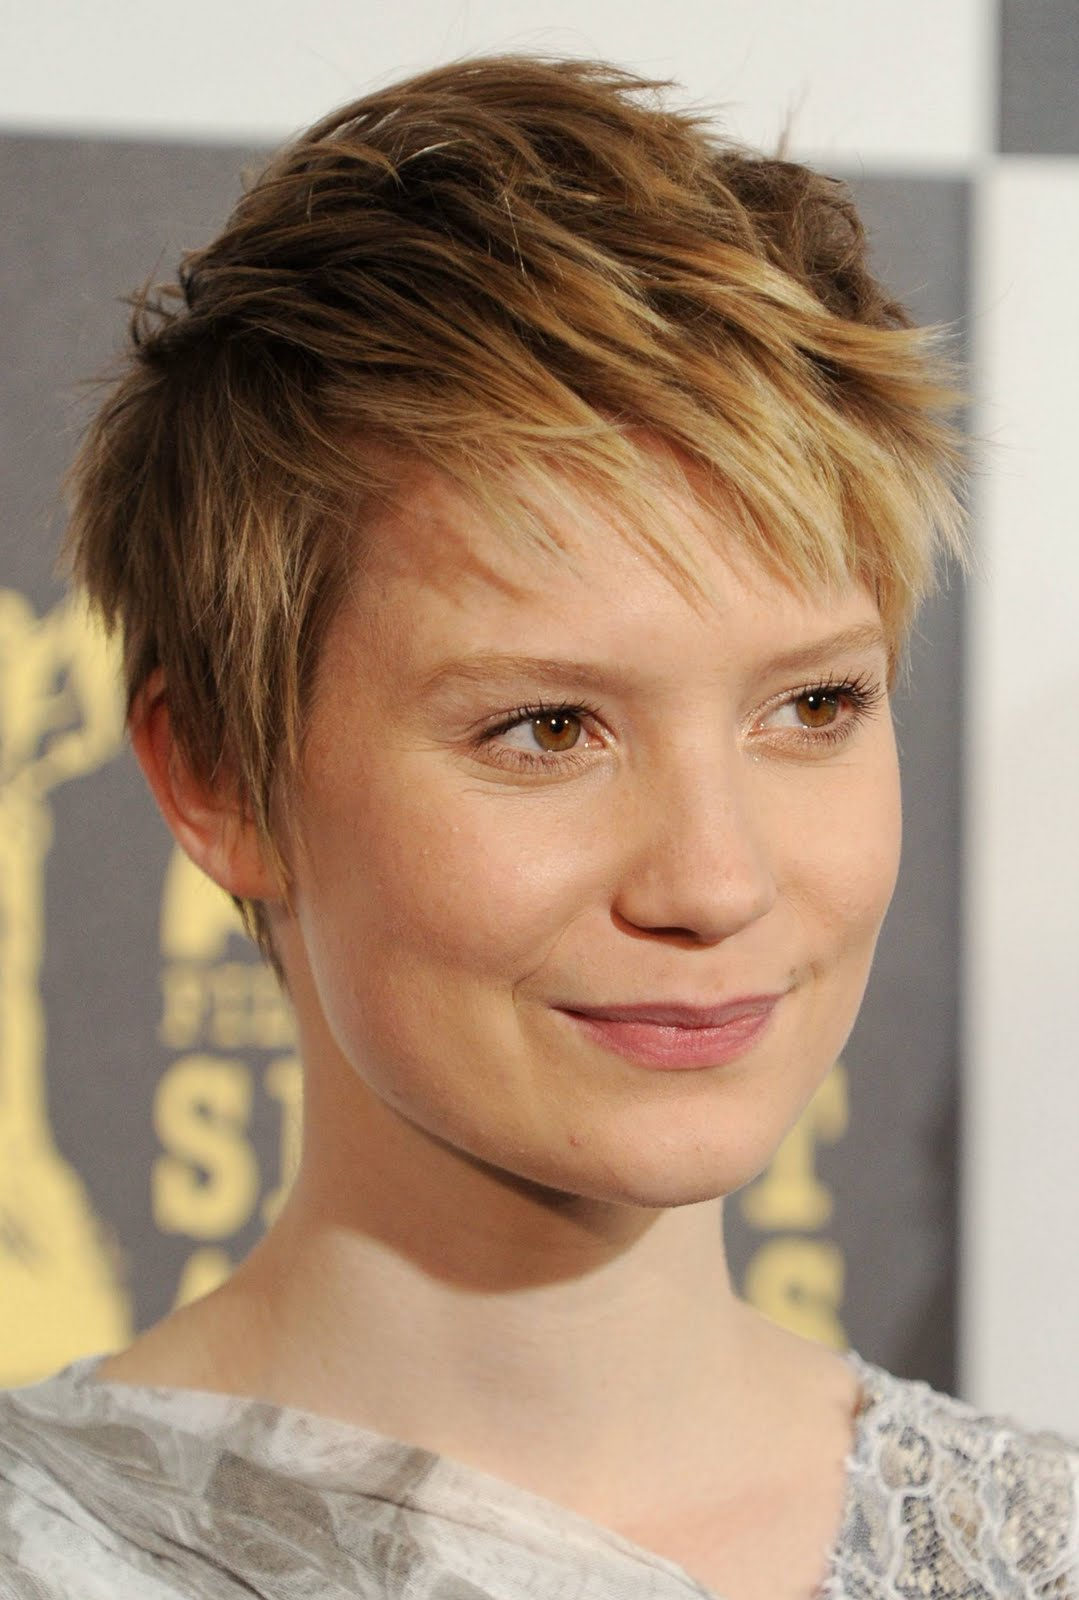 Pics Of Hair Cuts : kafgallery: Celebrity Favorite Short Pixie Hairstyles Of 2012